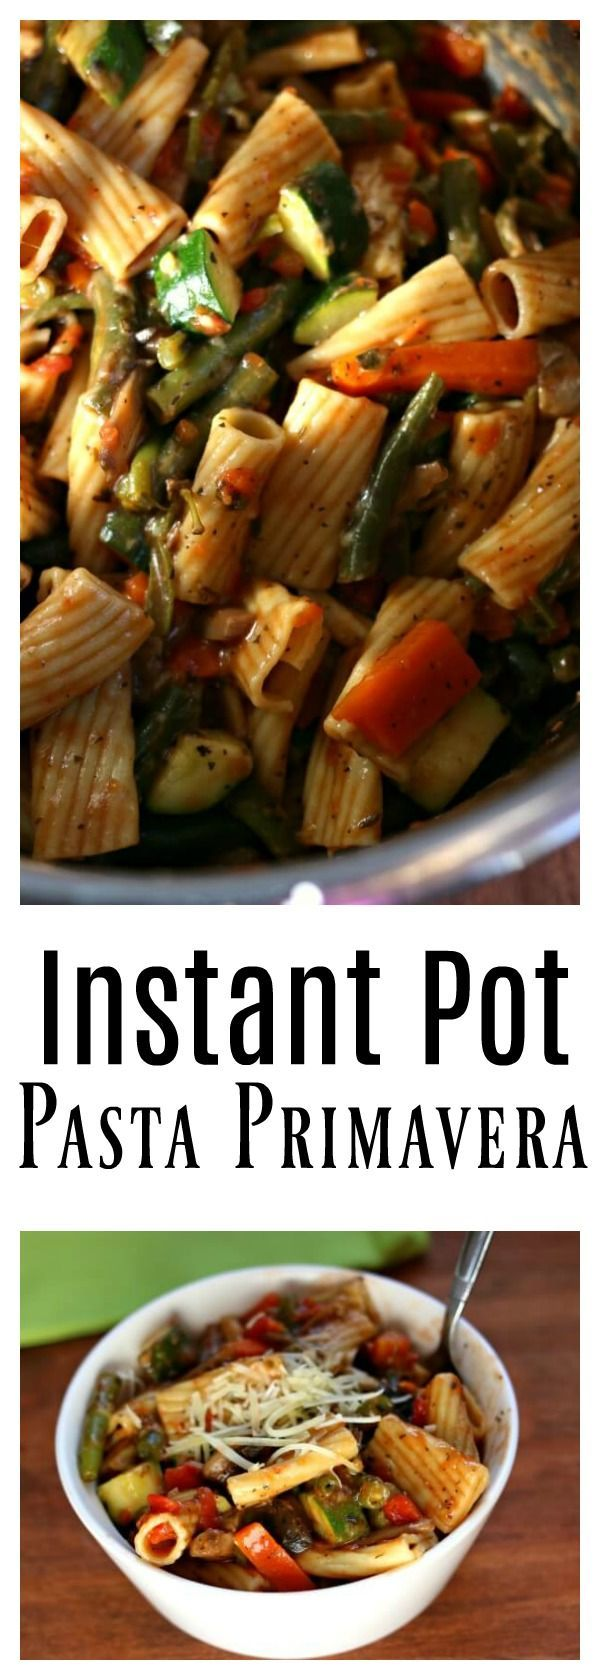 Instant Pot Pasta Primavera–A meatless pasta and vegetable dish. Rigatoni pasta is cooked quickly in your pressure cooker along with tomatoes, fresh green beans, carrots, mushrooms, garlic and zucchini.  The whole dish is tossed with grated parmesan cheese. #instantpot #instapot